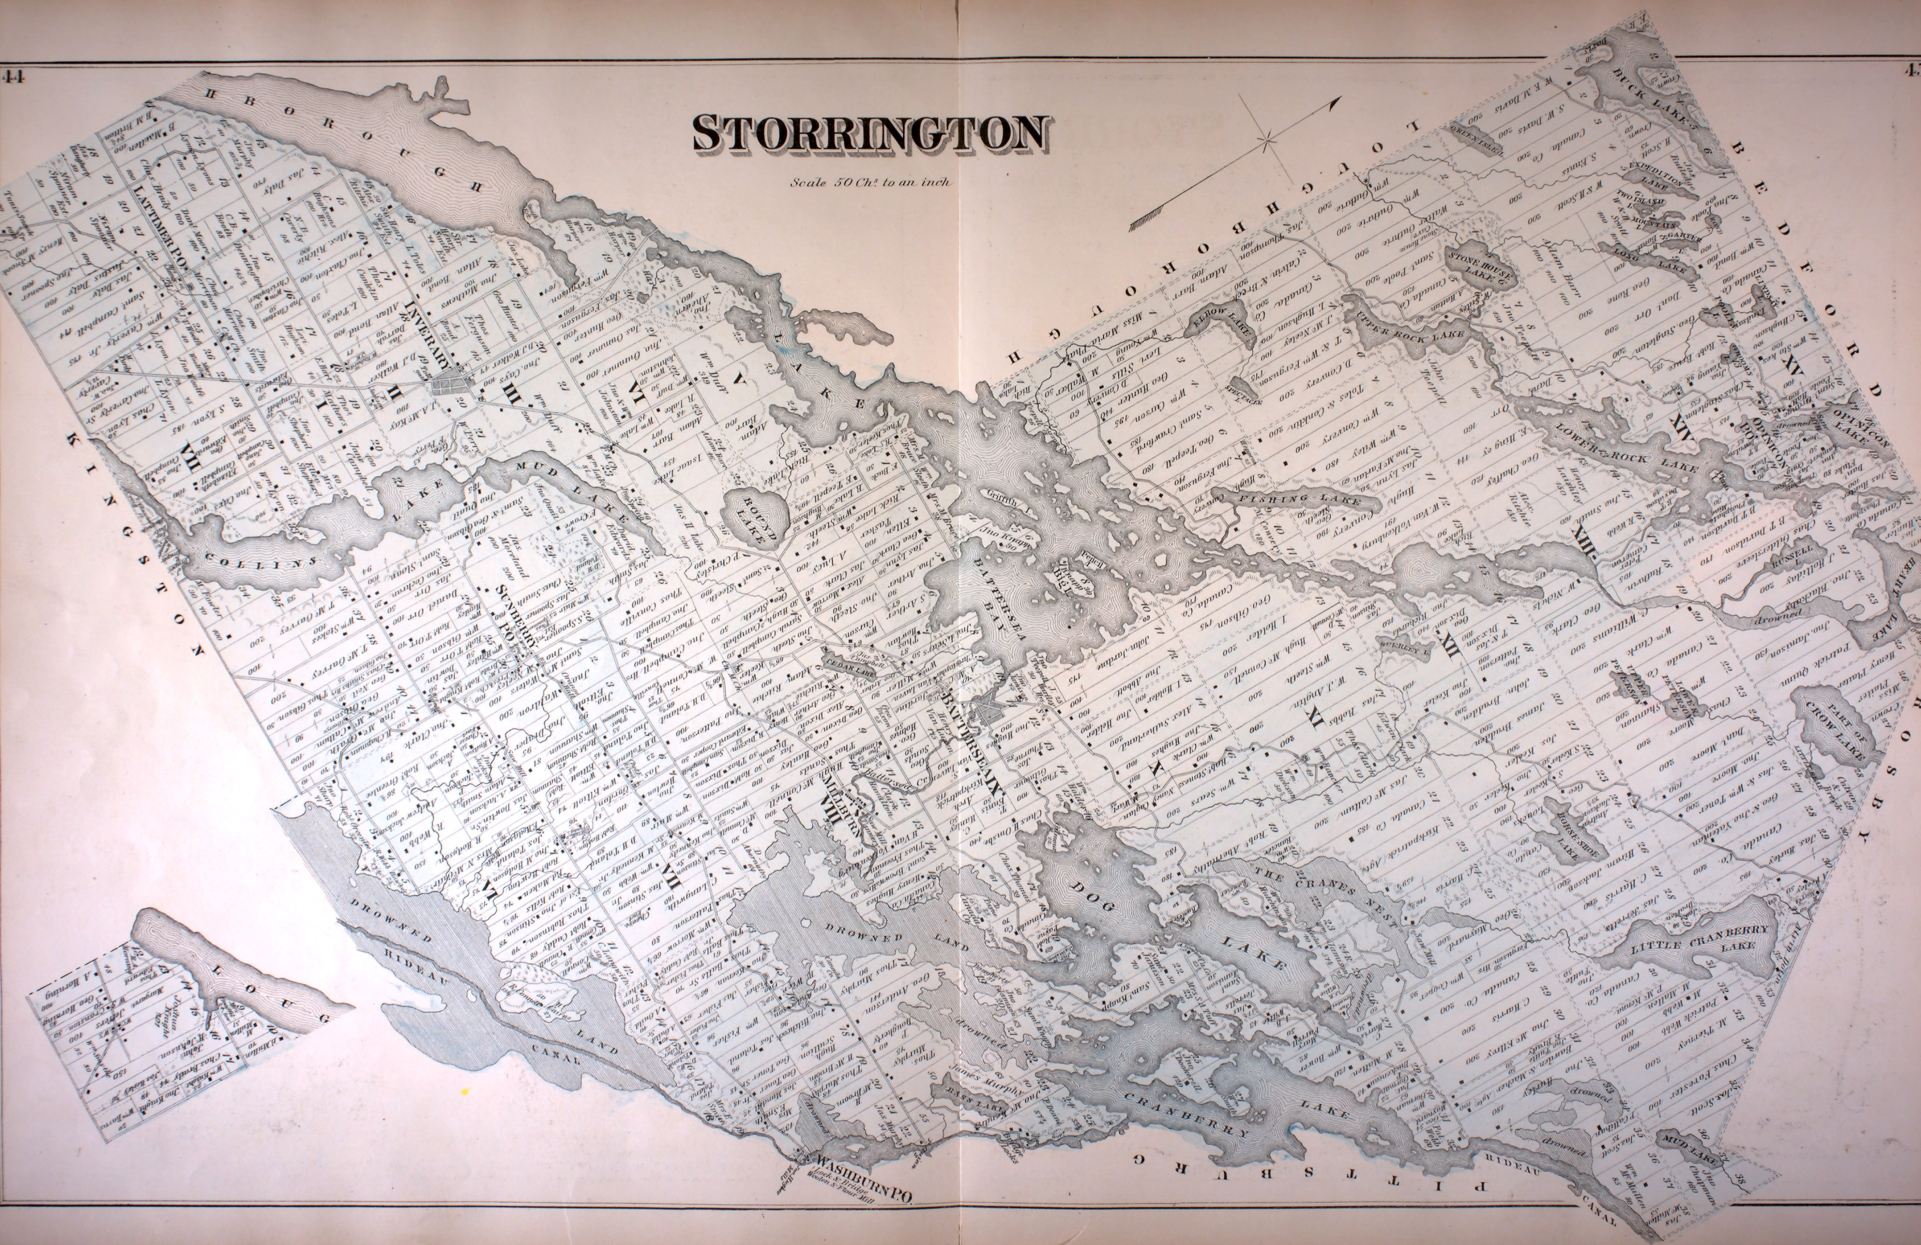 fro-m-storrington 1921x1245